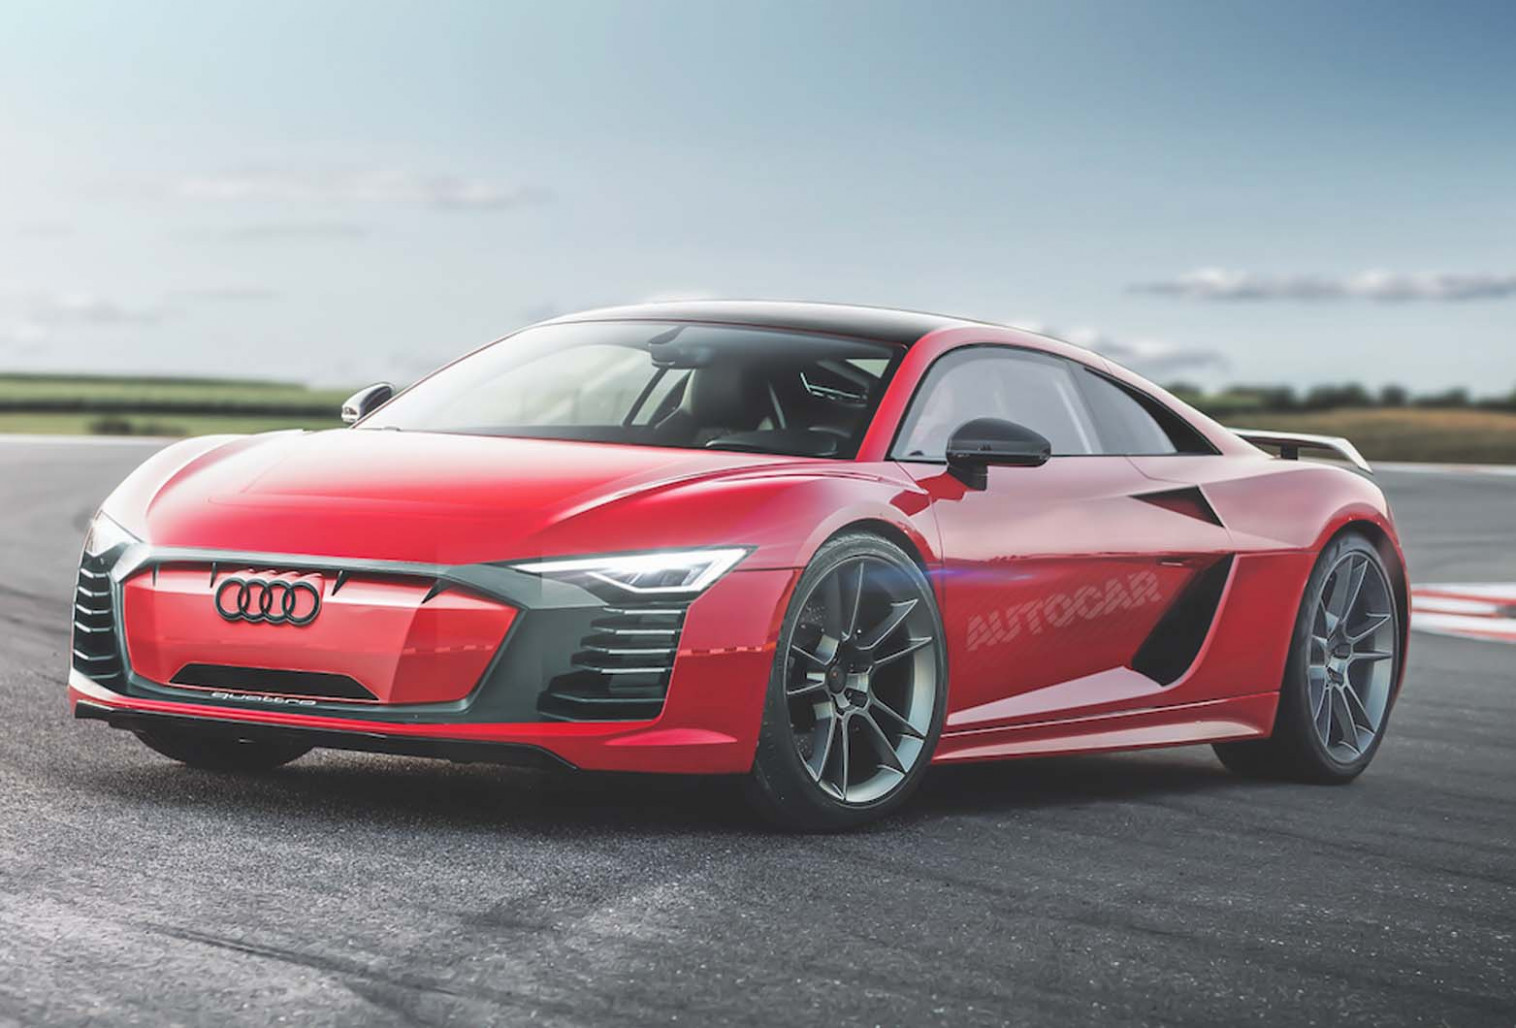 Redesign and Concept 2022 Audi R8